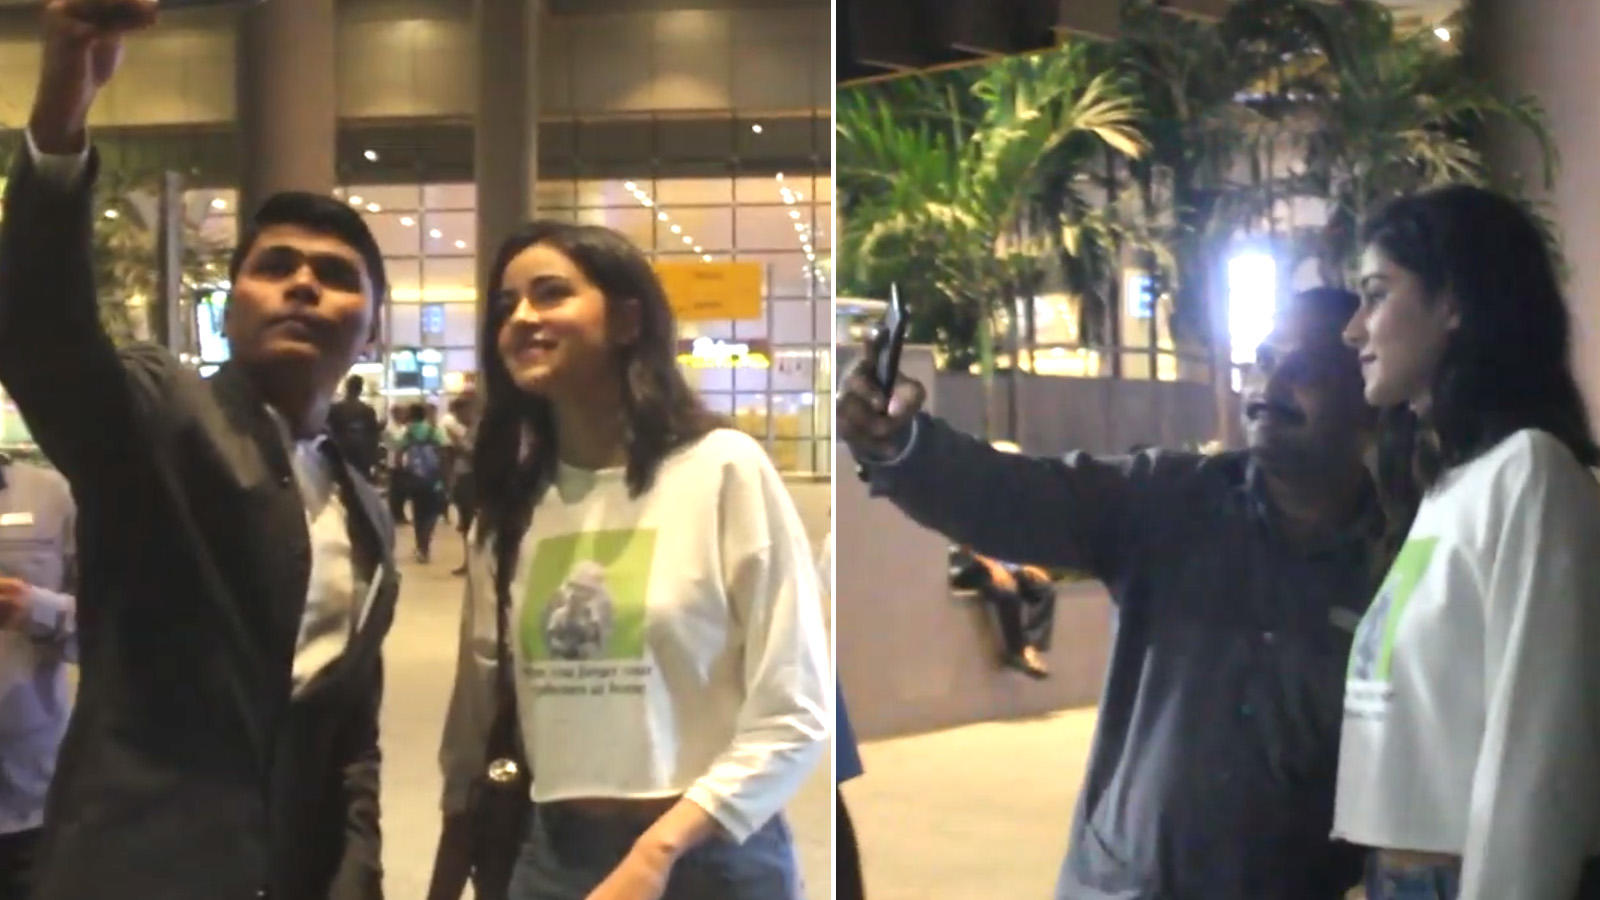 Ananya Panday poses for selfies with fans at the airport